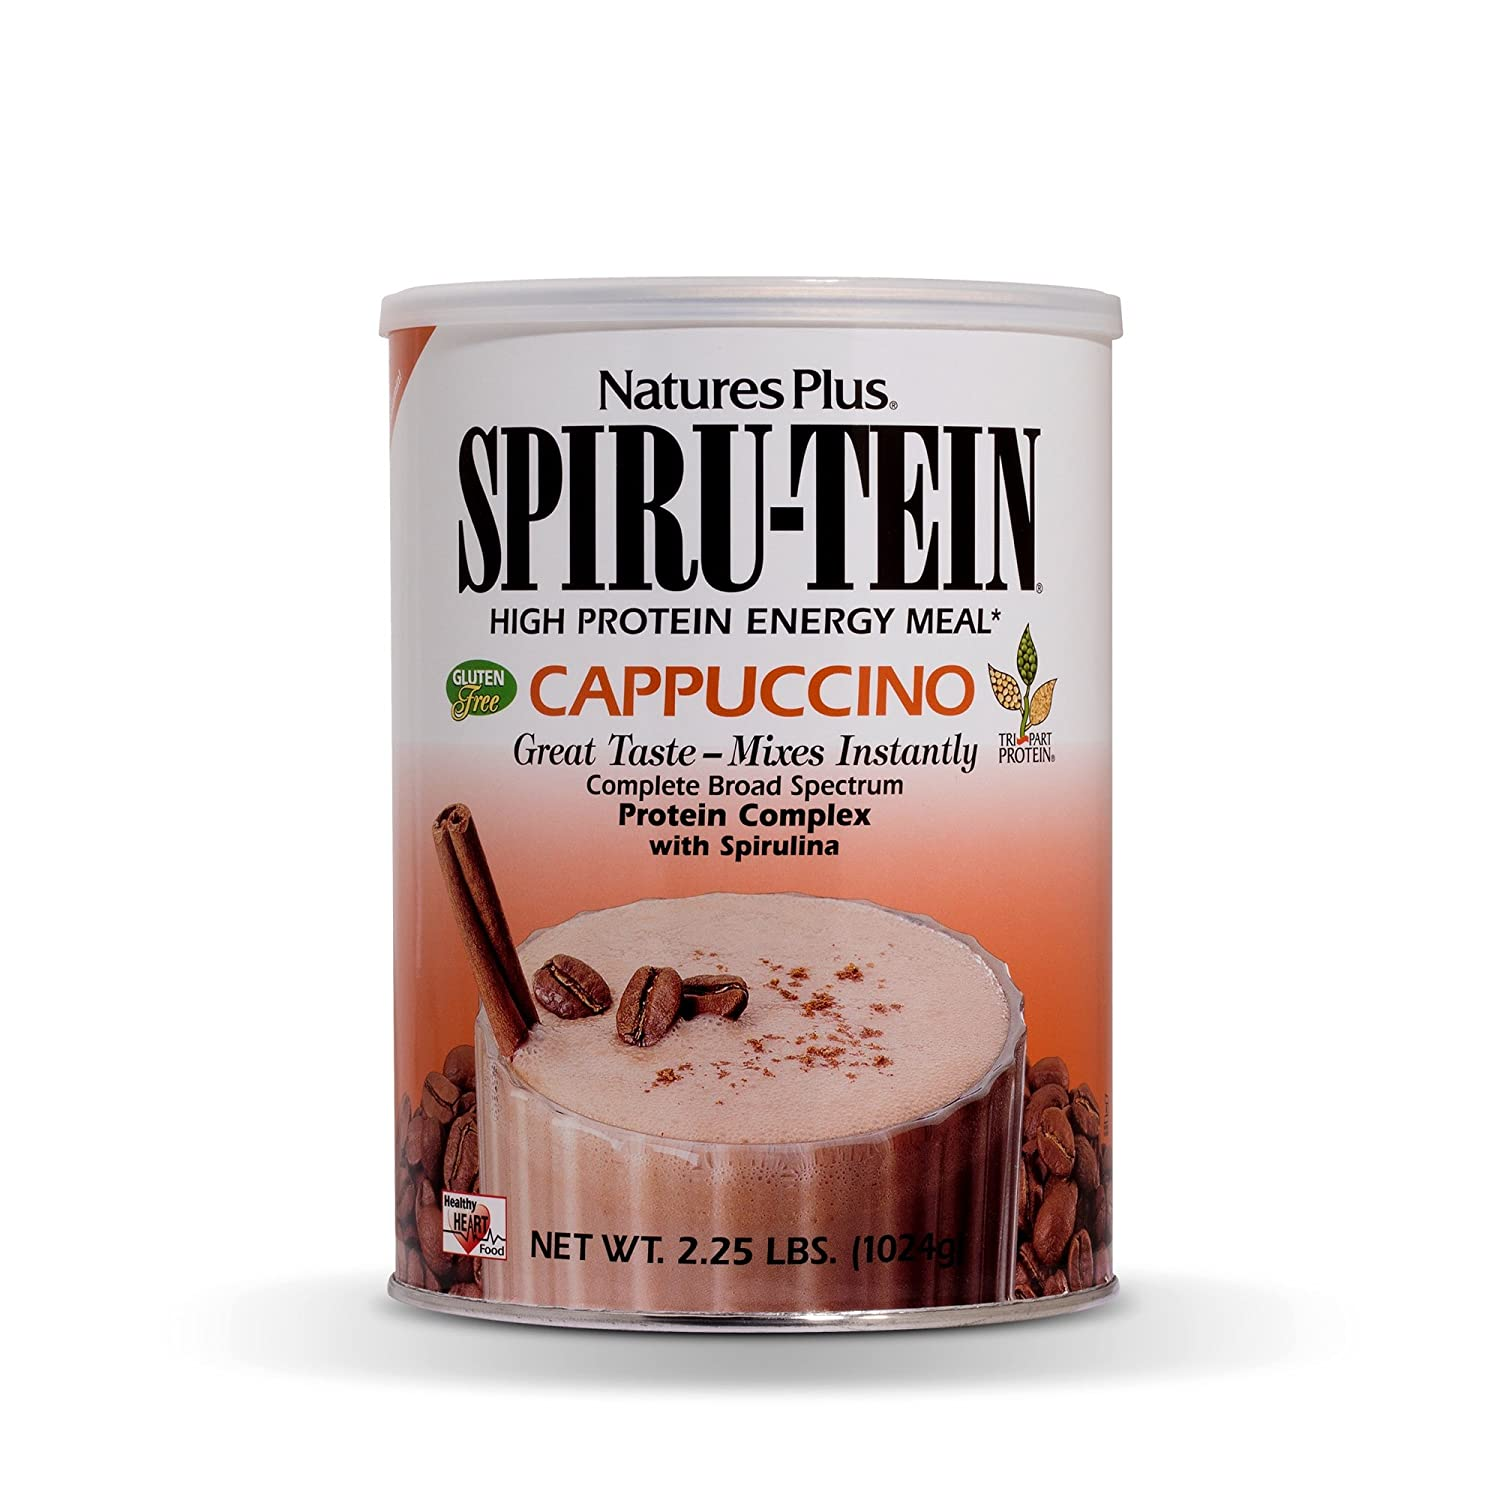 NaturesPlus SPIRU-TEIN Shake – Cappuccino Flavor – 2.2 lbs, Spirulina Protein Powder – Plant Based Meal Replacement, Vitamins Minerals for Energy – Vegetarian – 32 Servings